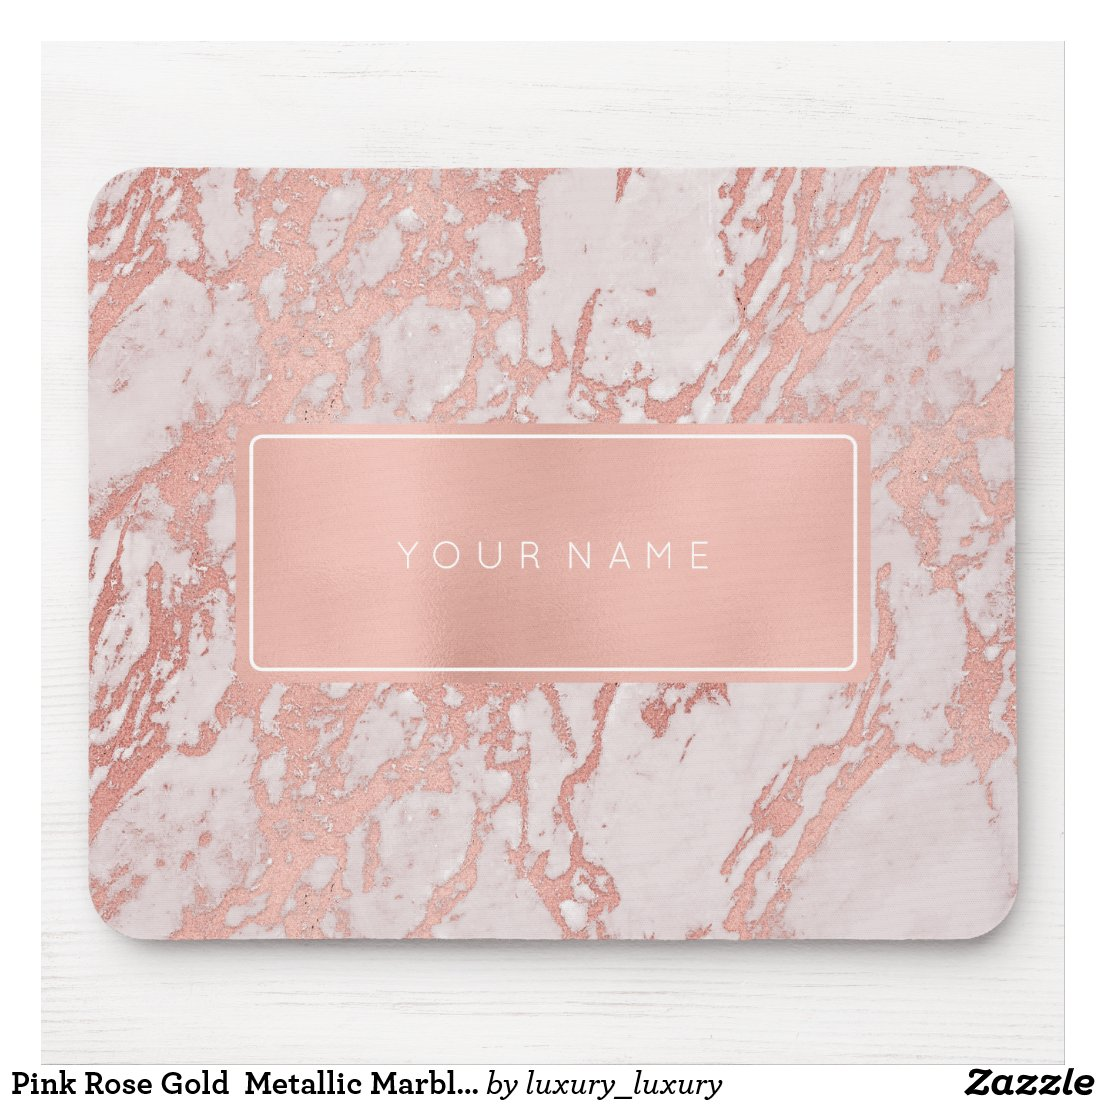 Pink Rose Gold Metallic Marble White Rectangular